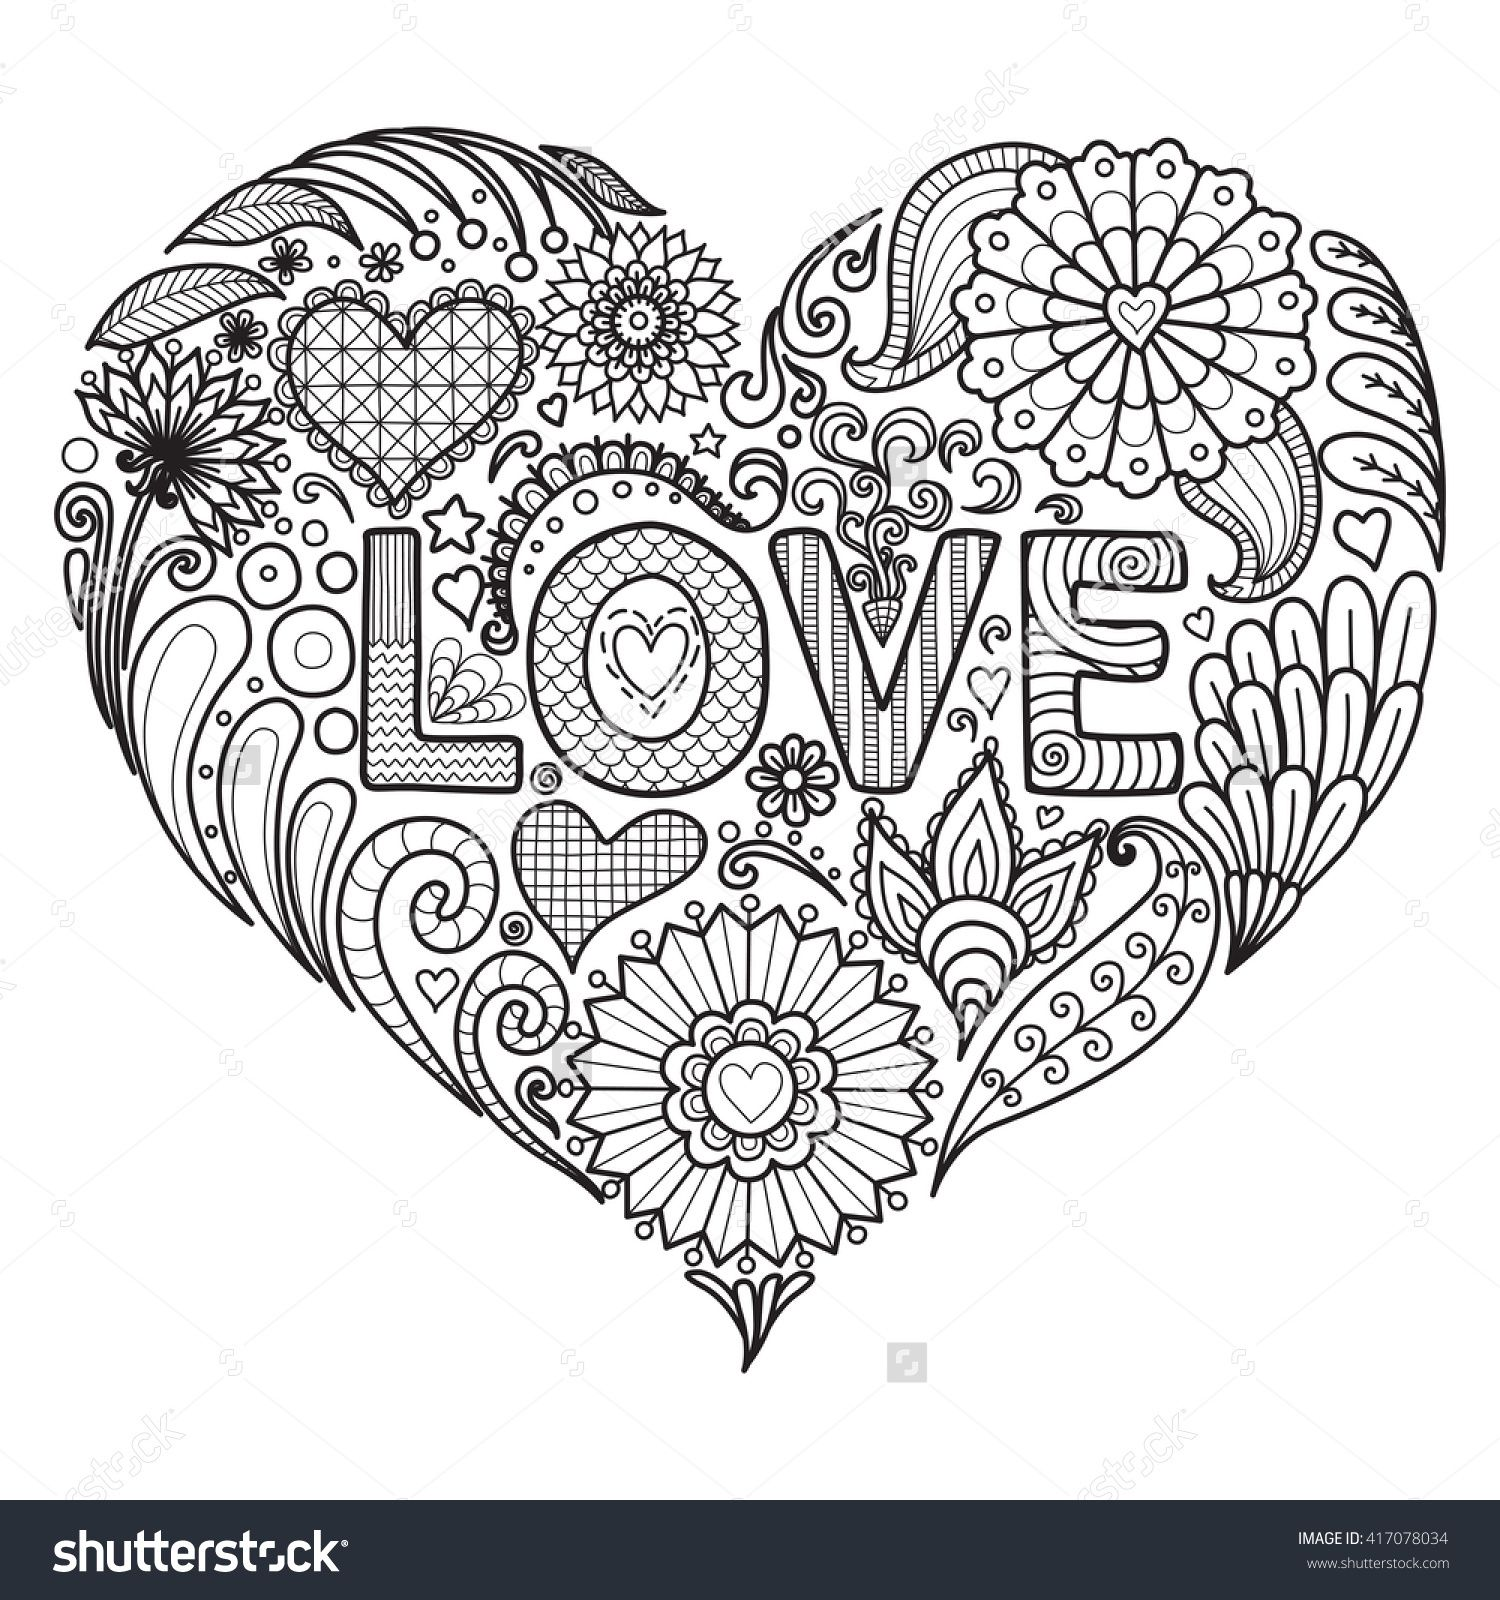 Heart On Flowers Coloring Books For Adult I Shutterstock 417078034 ...